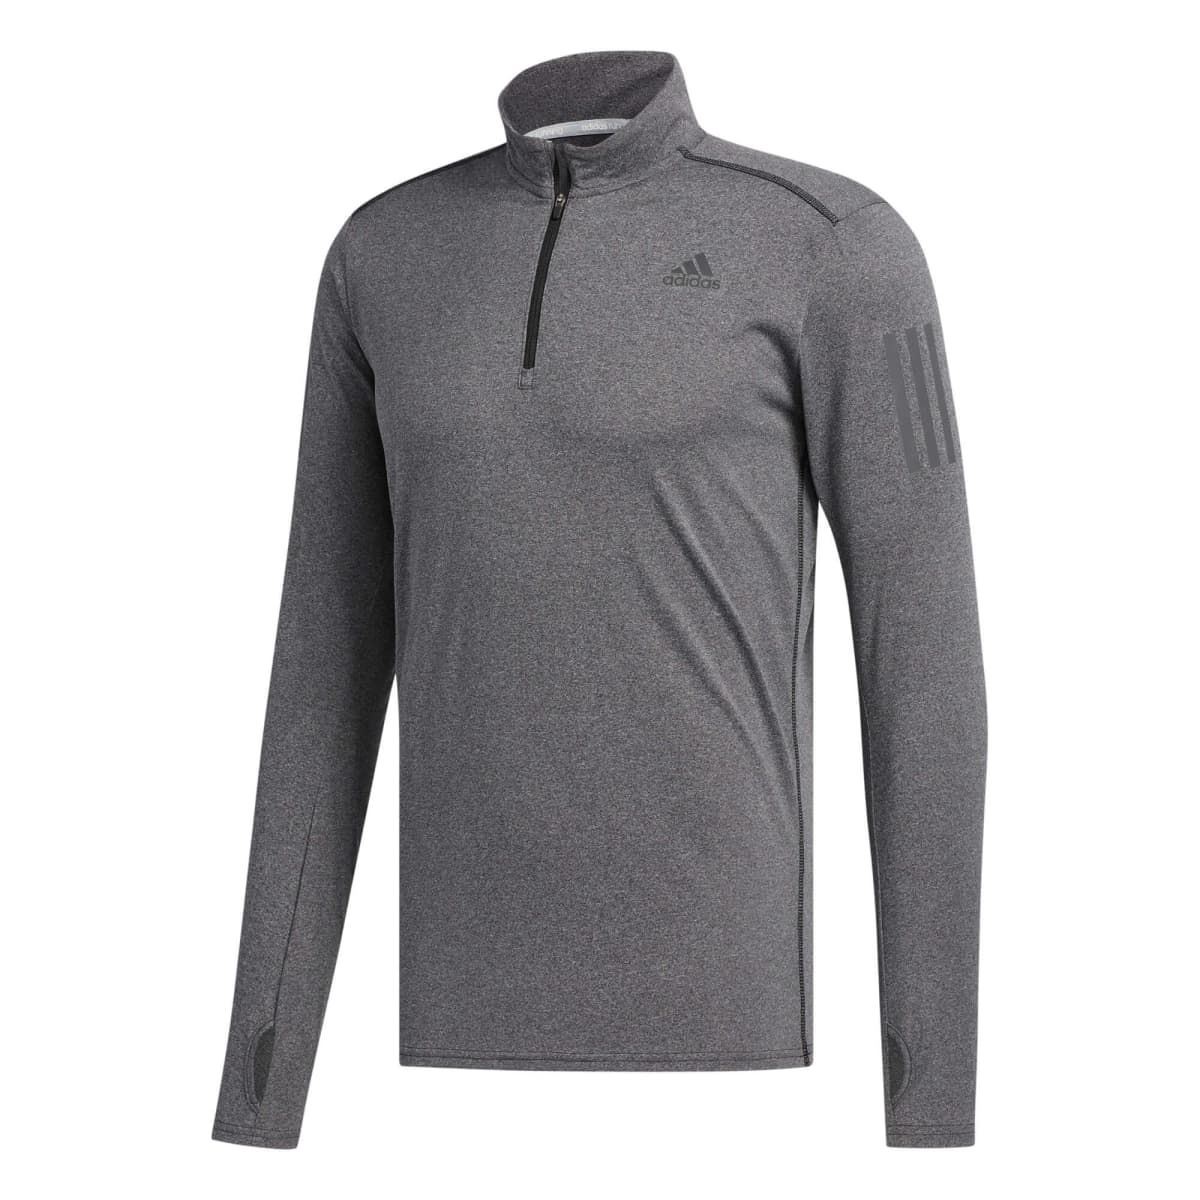 a947d73a012 Adidas Men's Response 1/2 Zip Long Sleeve Top